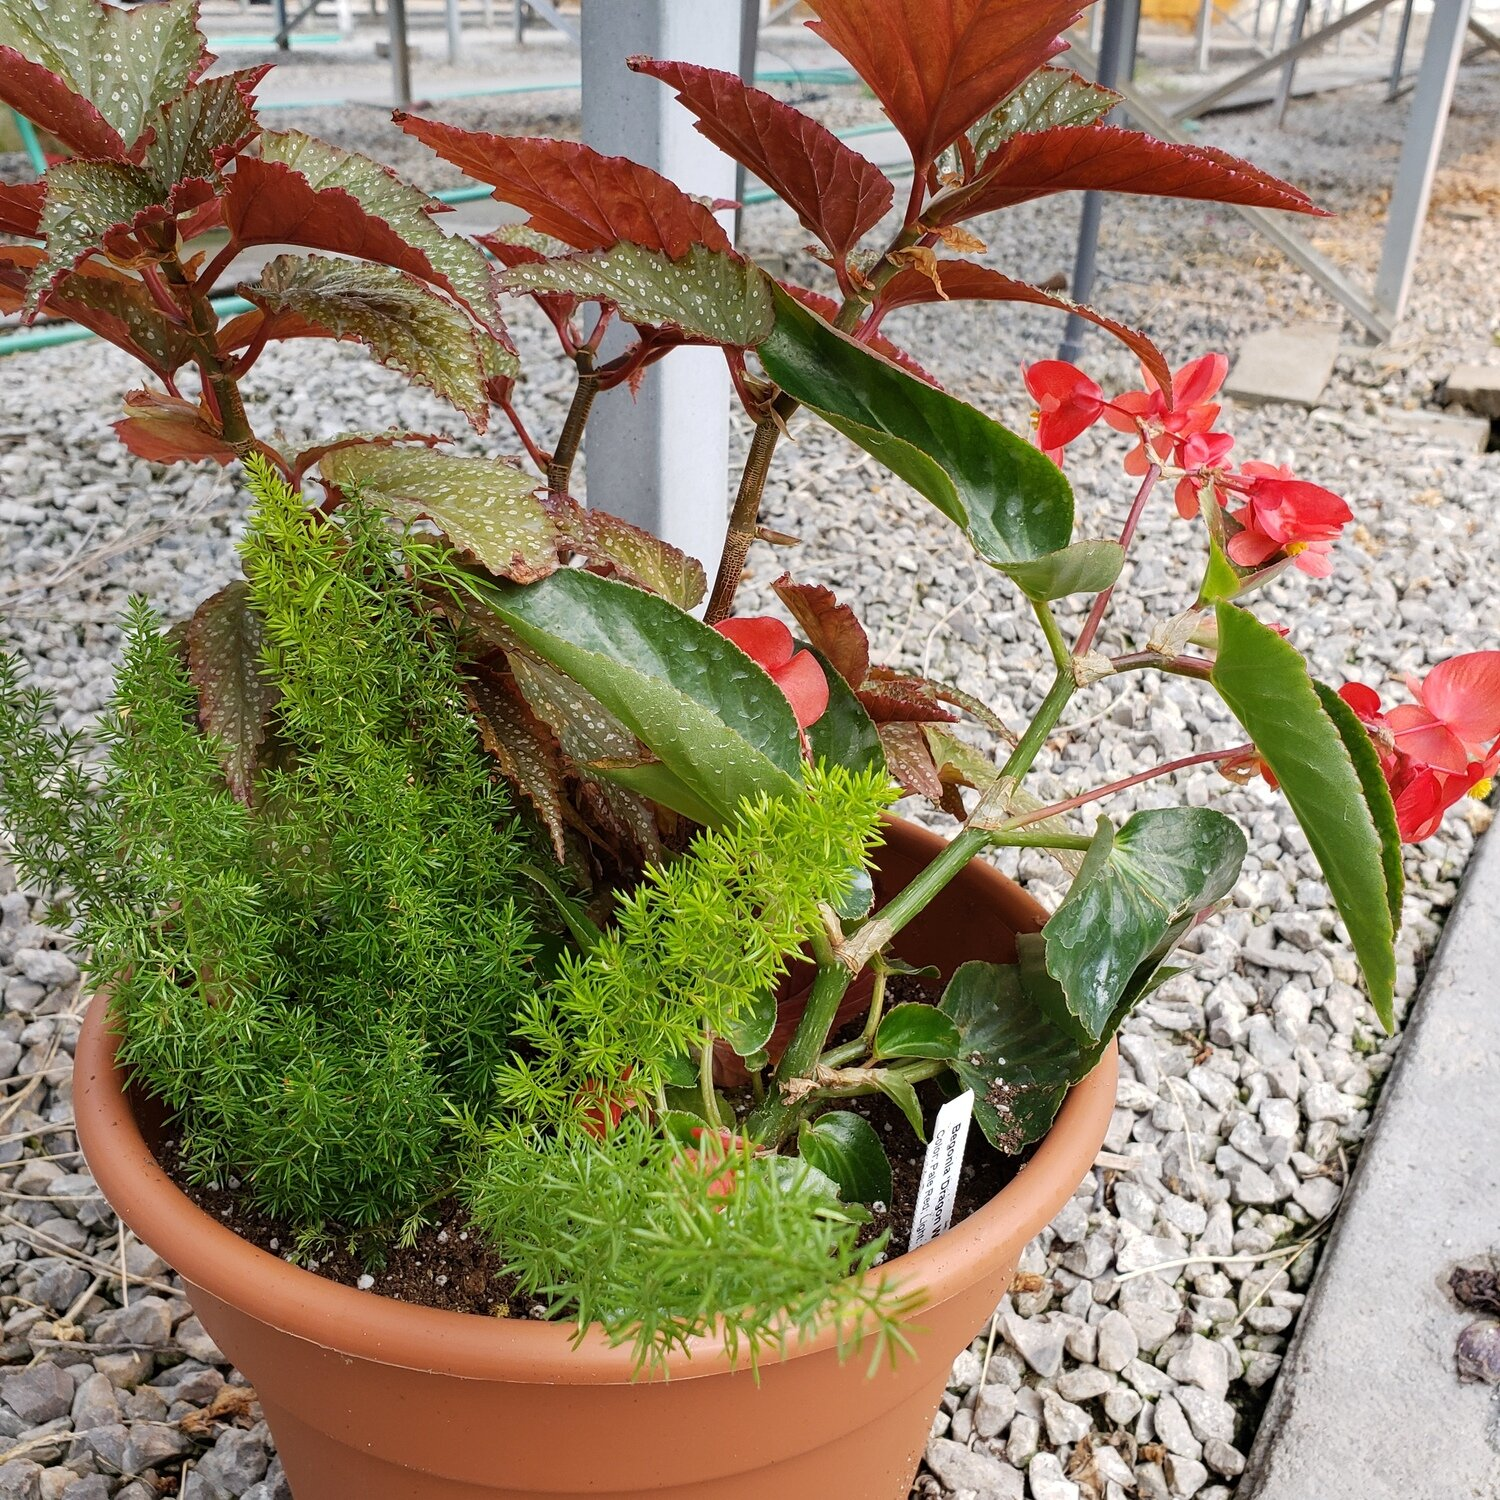 Patio Pot, Shade: Foxtail Fern, Aerial & Dragon Wing Red Begonias